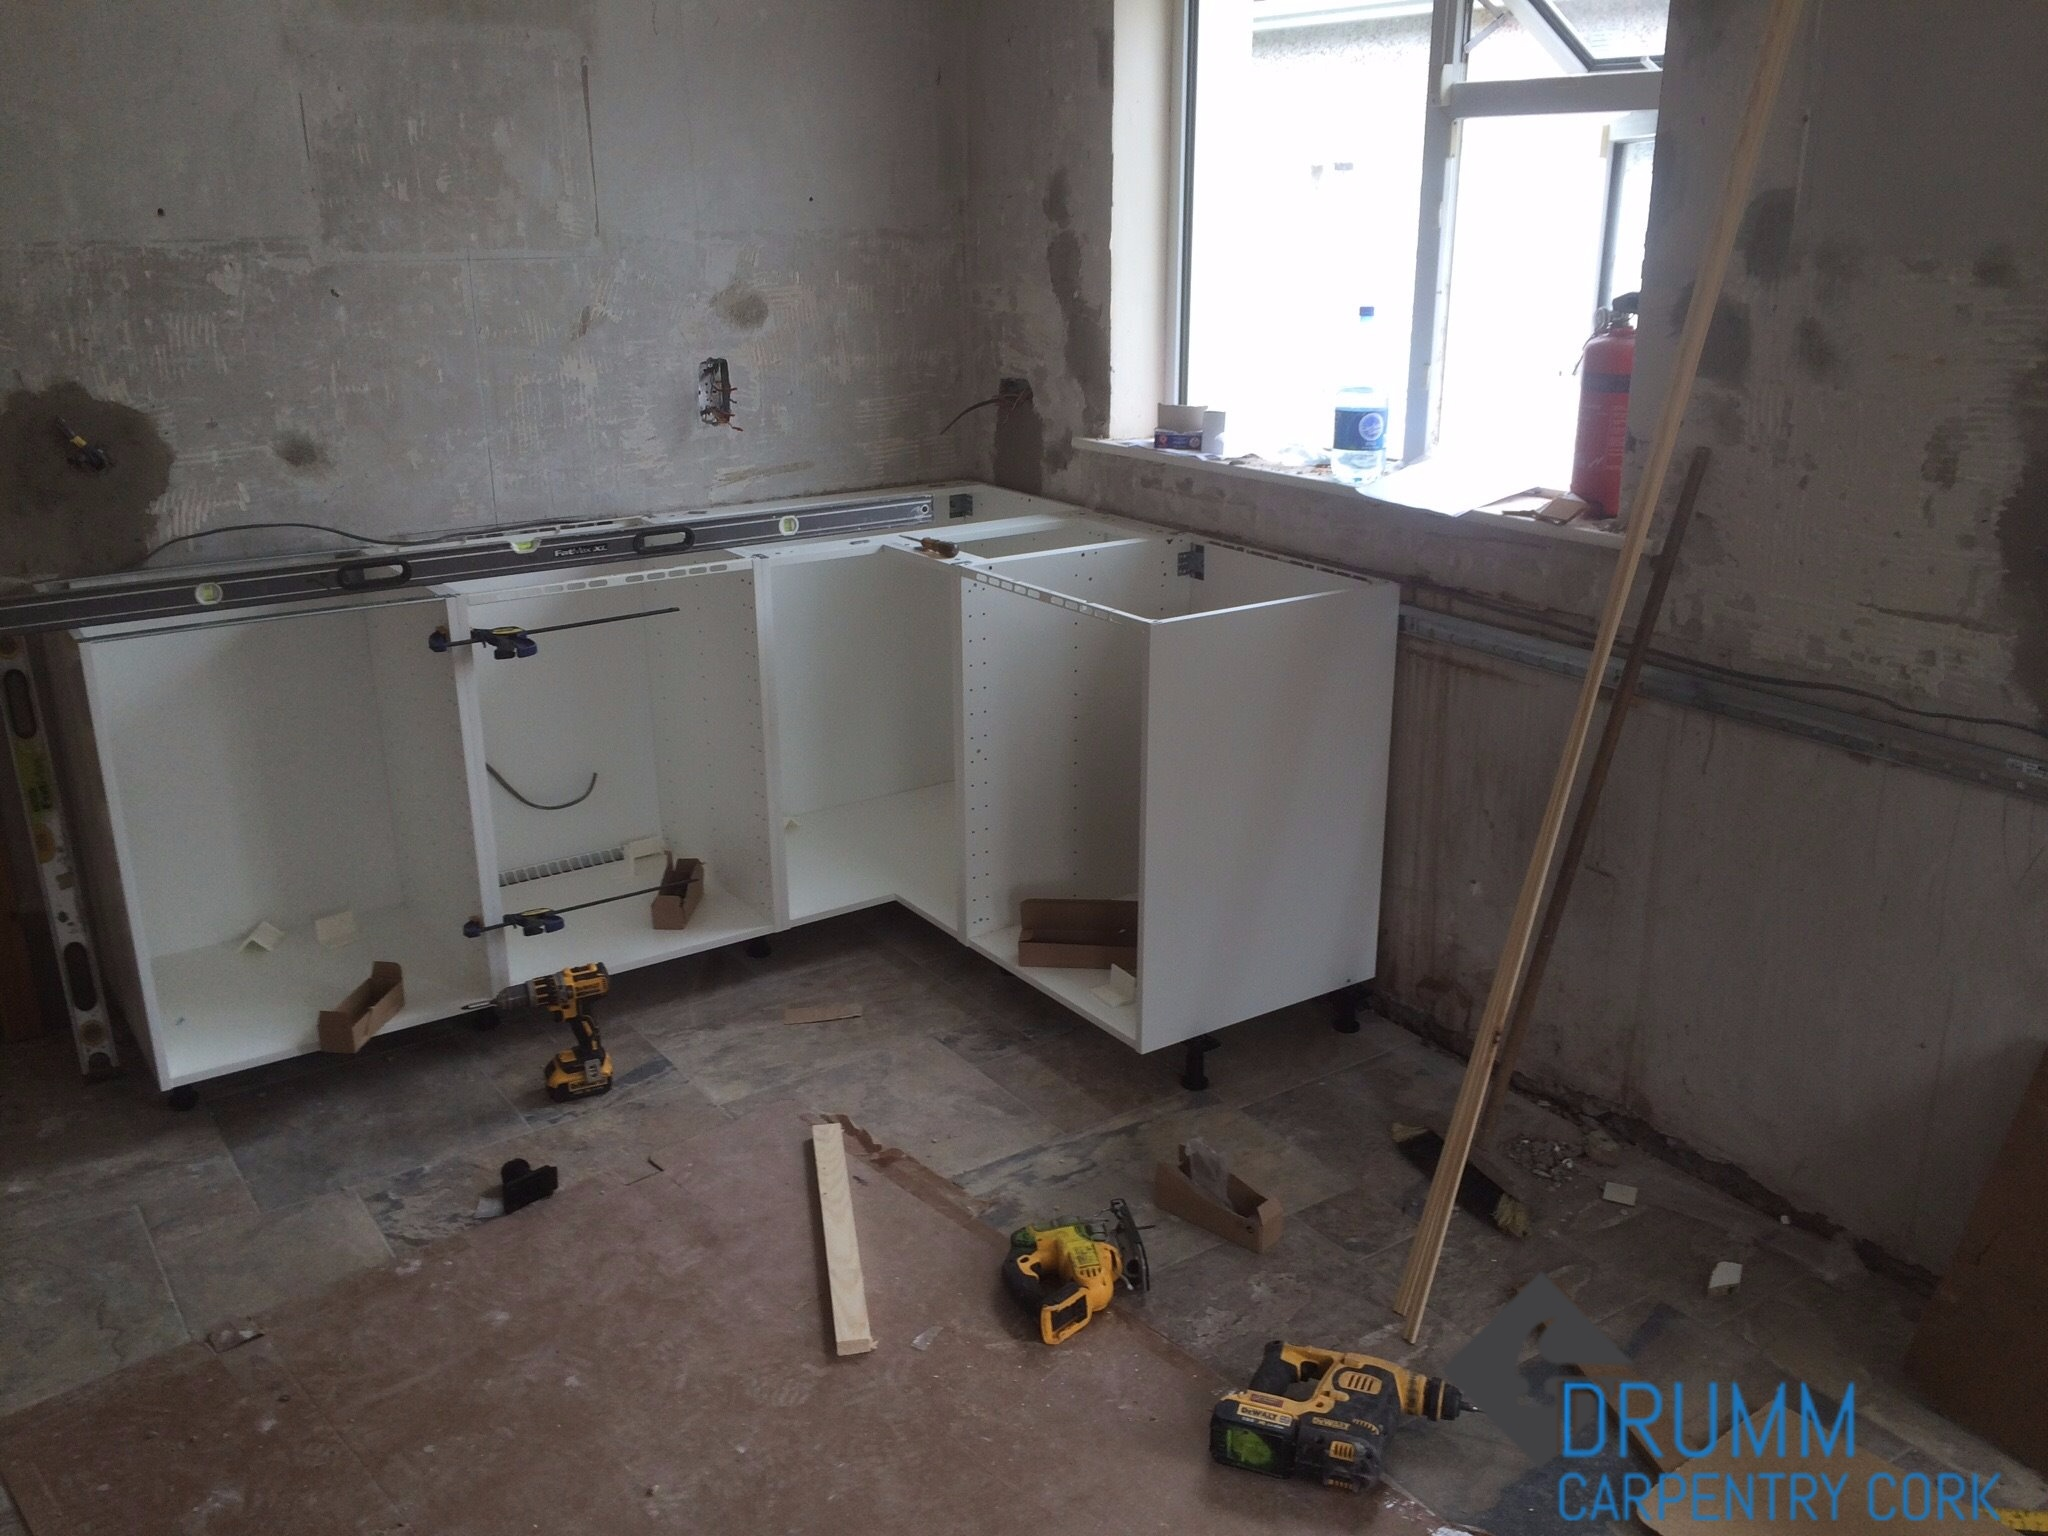 b&q kitchen fitters